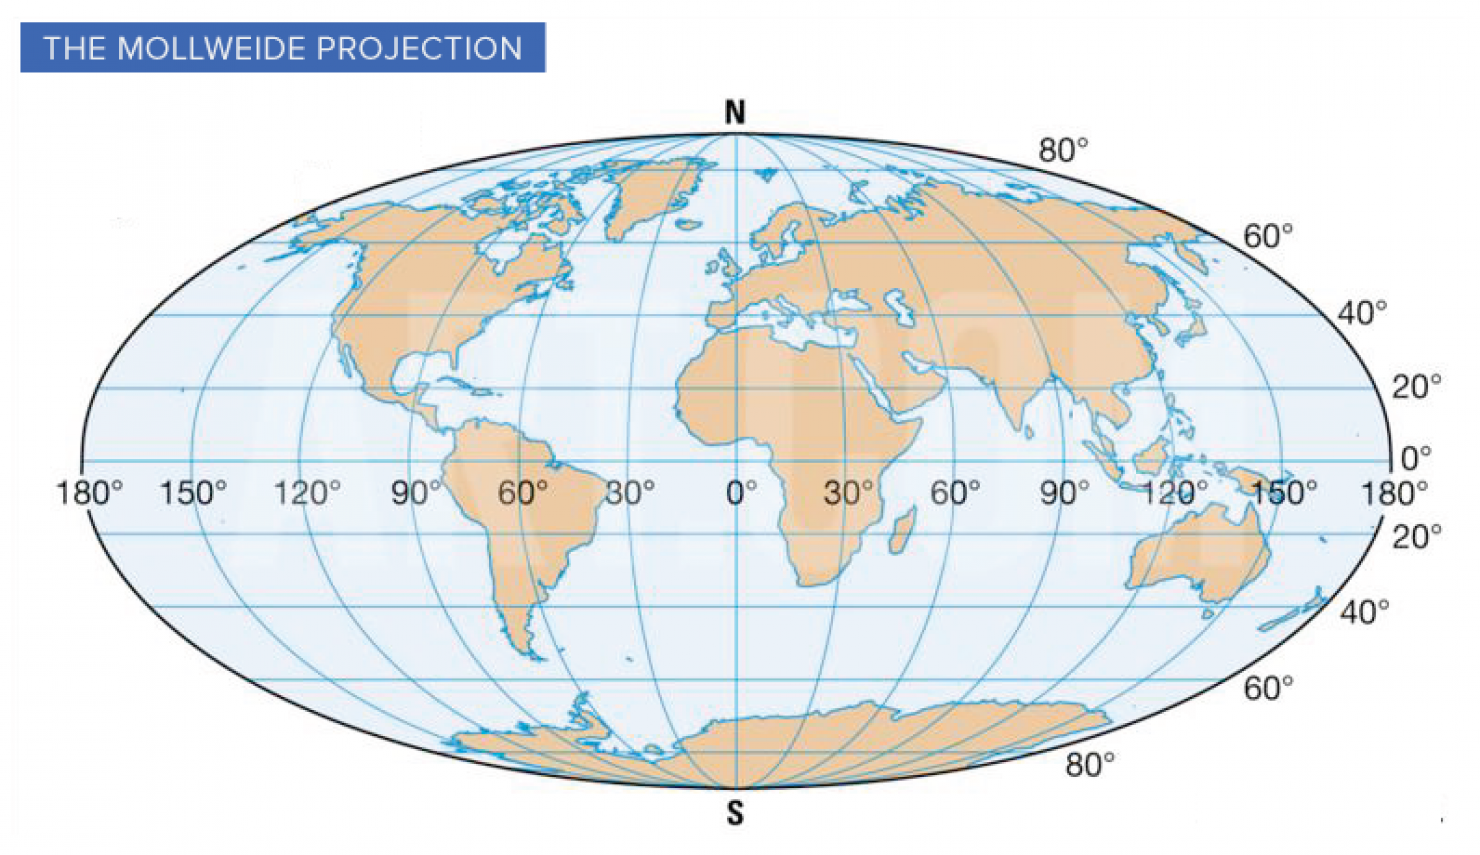 The problem with our maps john paul goodes attempt known as the goode homolosine projection took this concept a step further by adding interruptions at strategic locations to help gumiabroncs Image collections